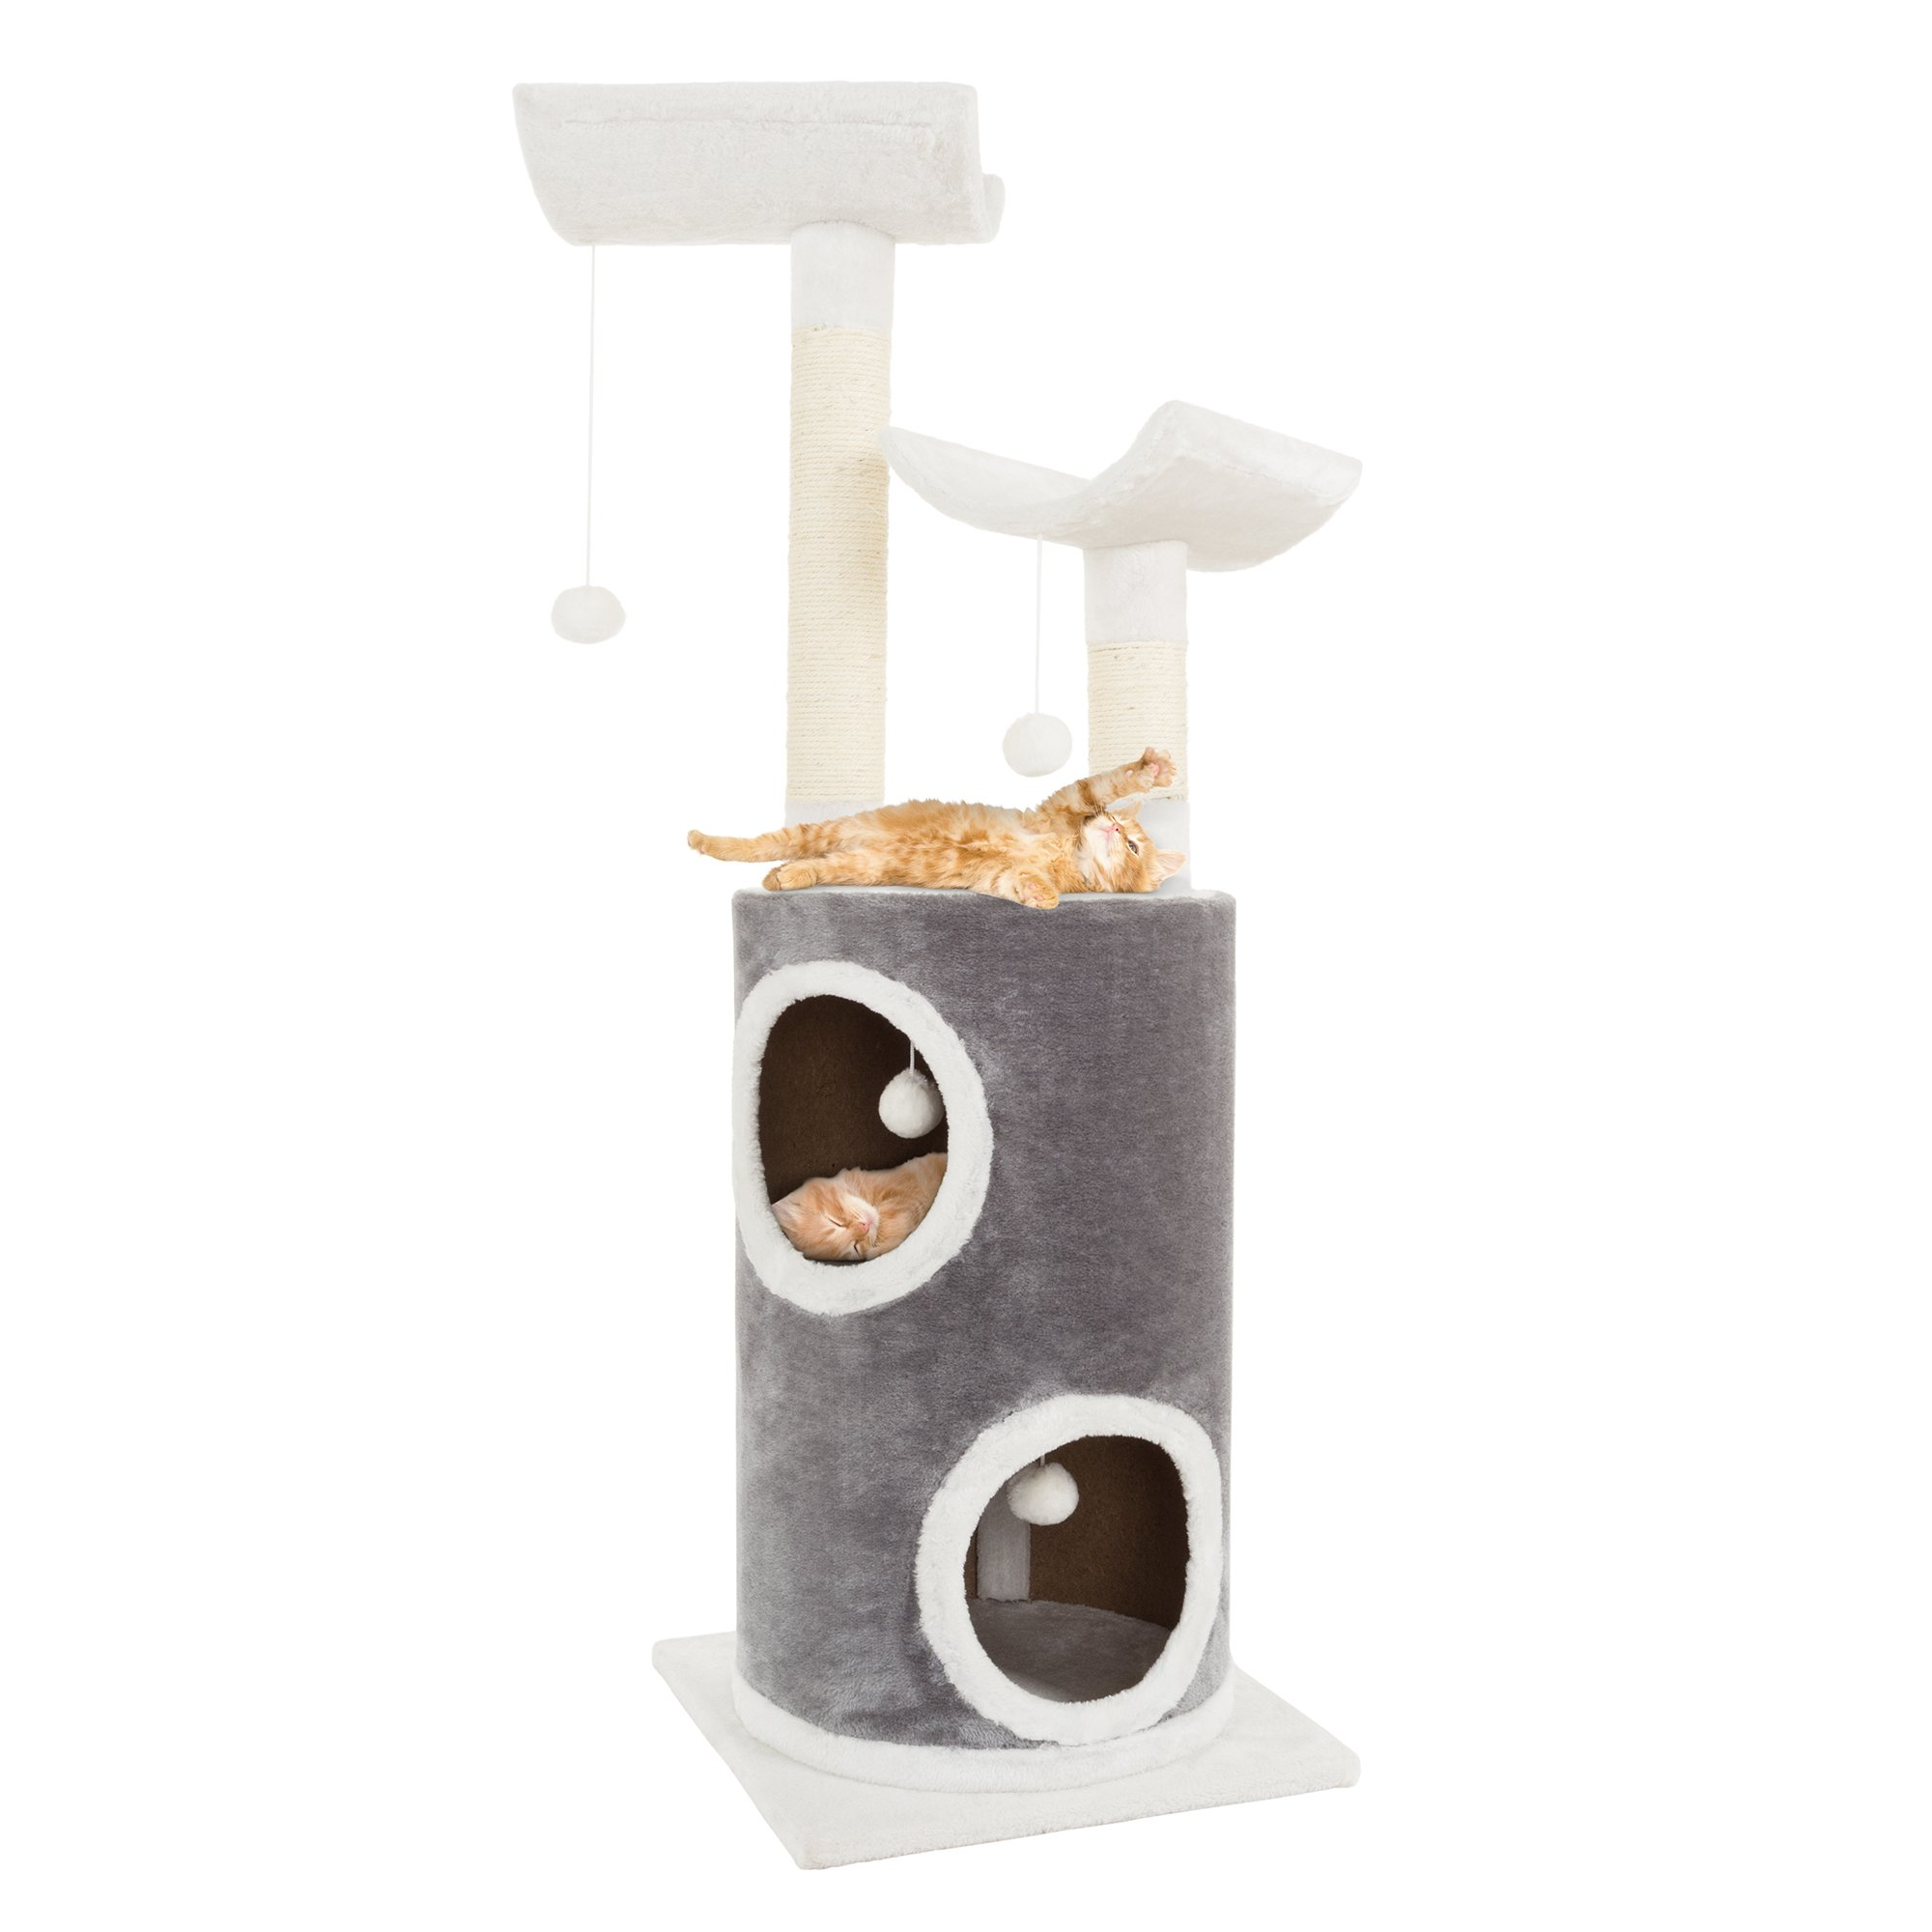 PETMAKER Cat Tree 5 Tier Double Decker Condo 4 Toys 2 Scratching Posts, 44.75'', Gray and White